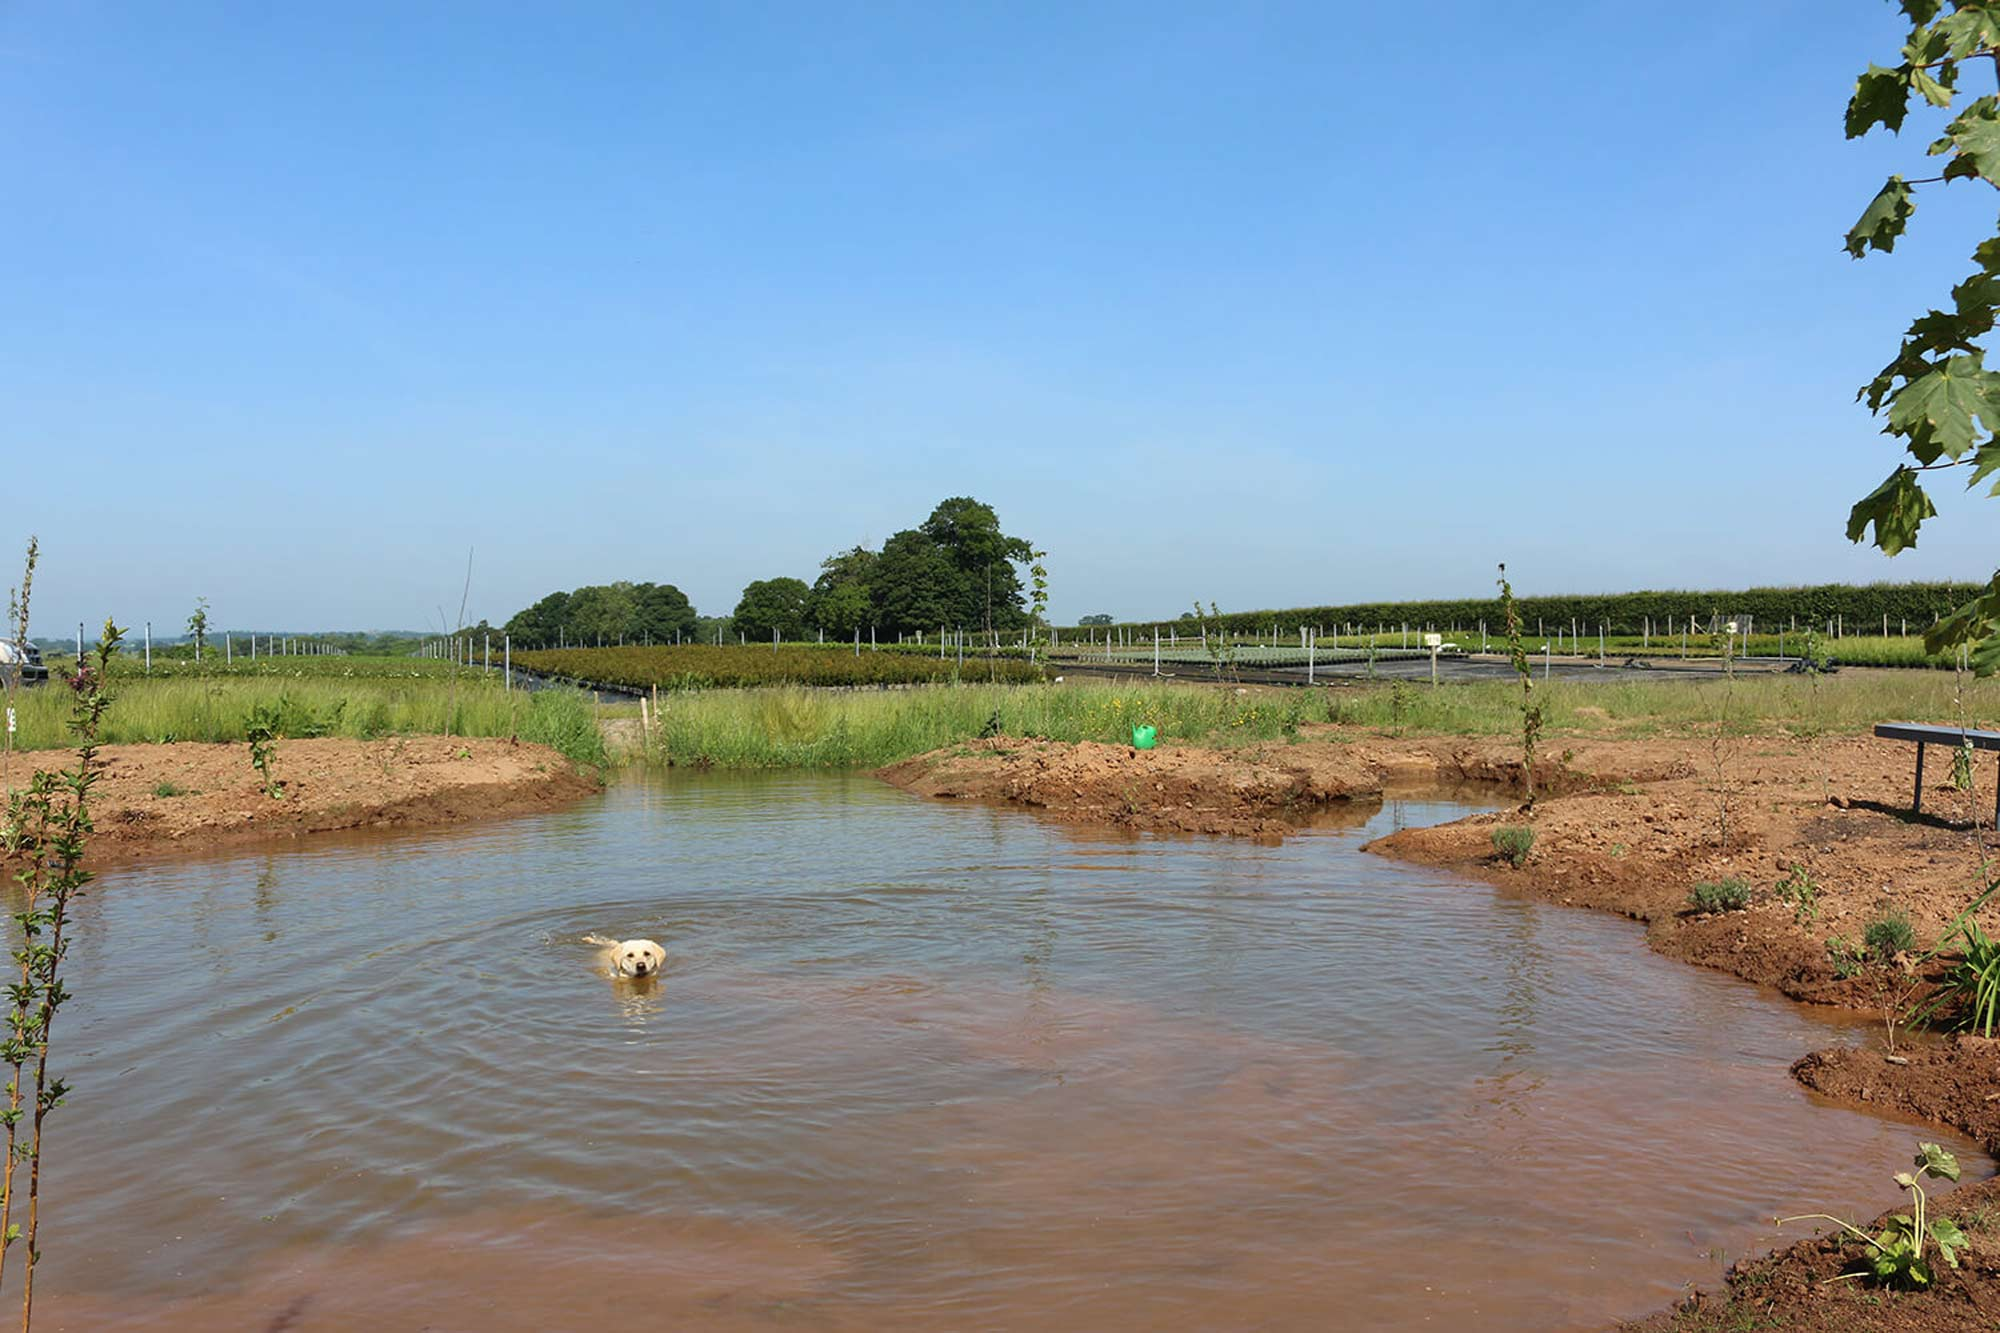 Pond with nursery in the background